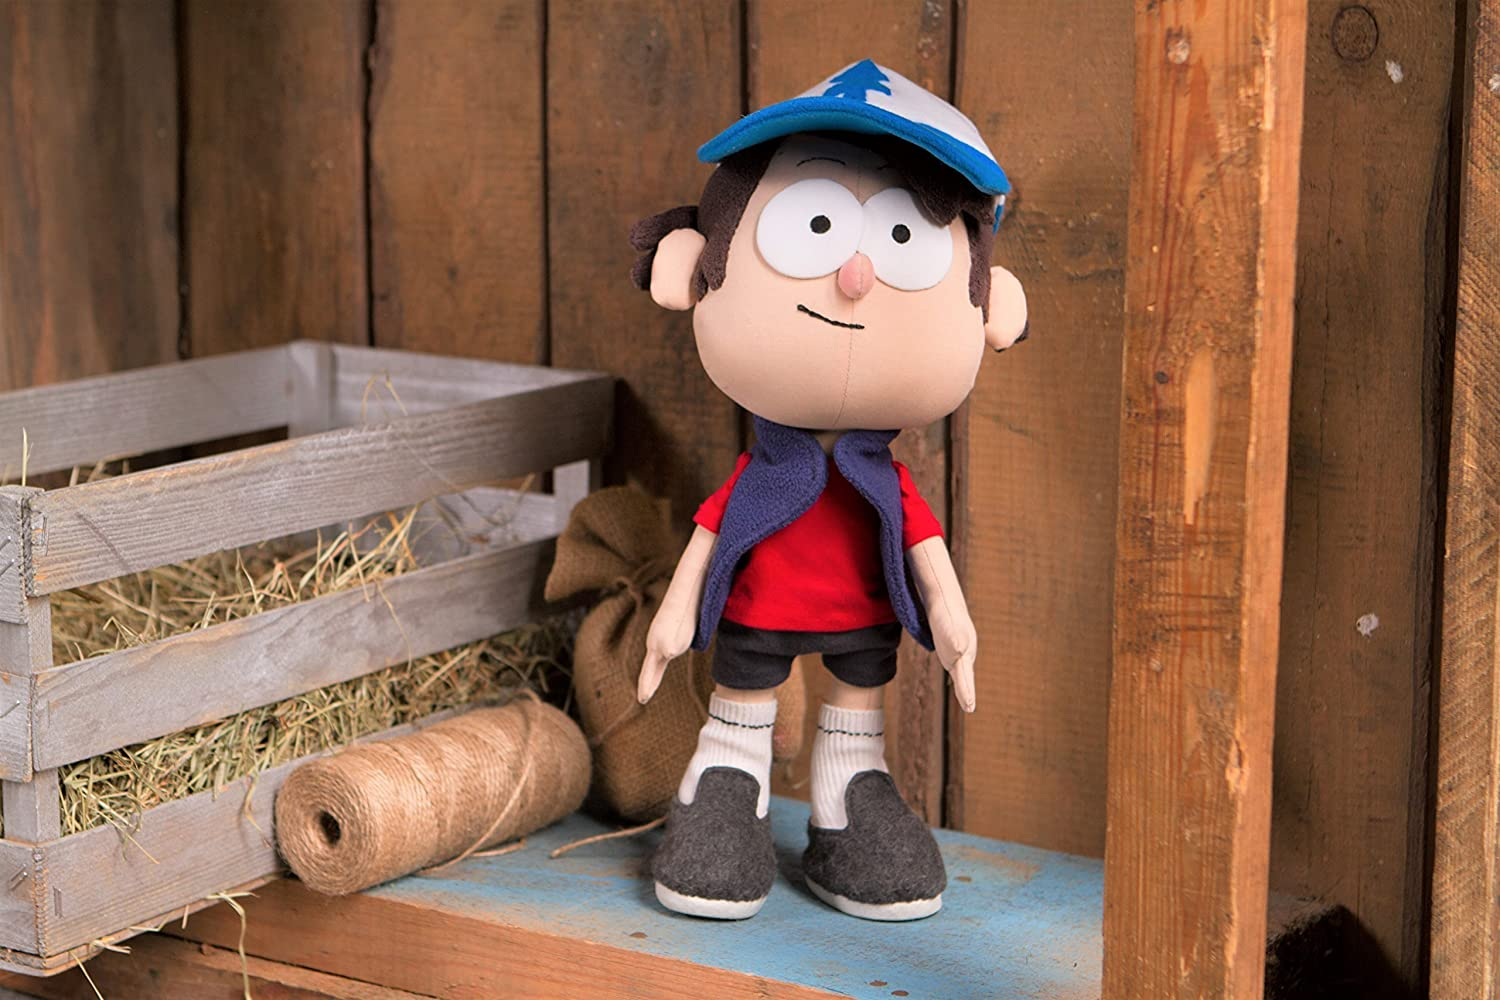 Dipper Pines Gravity Falls - handmade plush doll, 12 in high, sits and stands